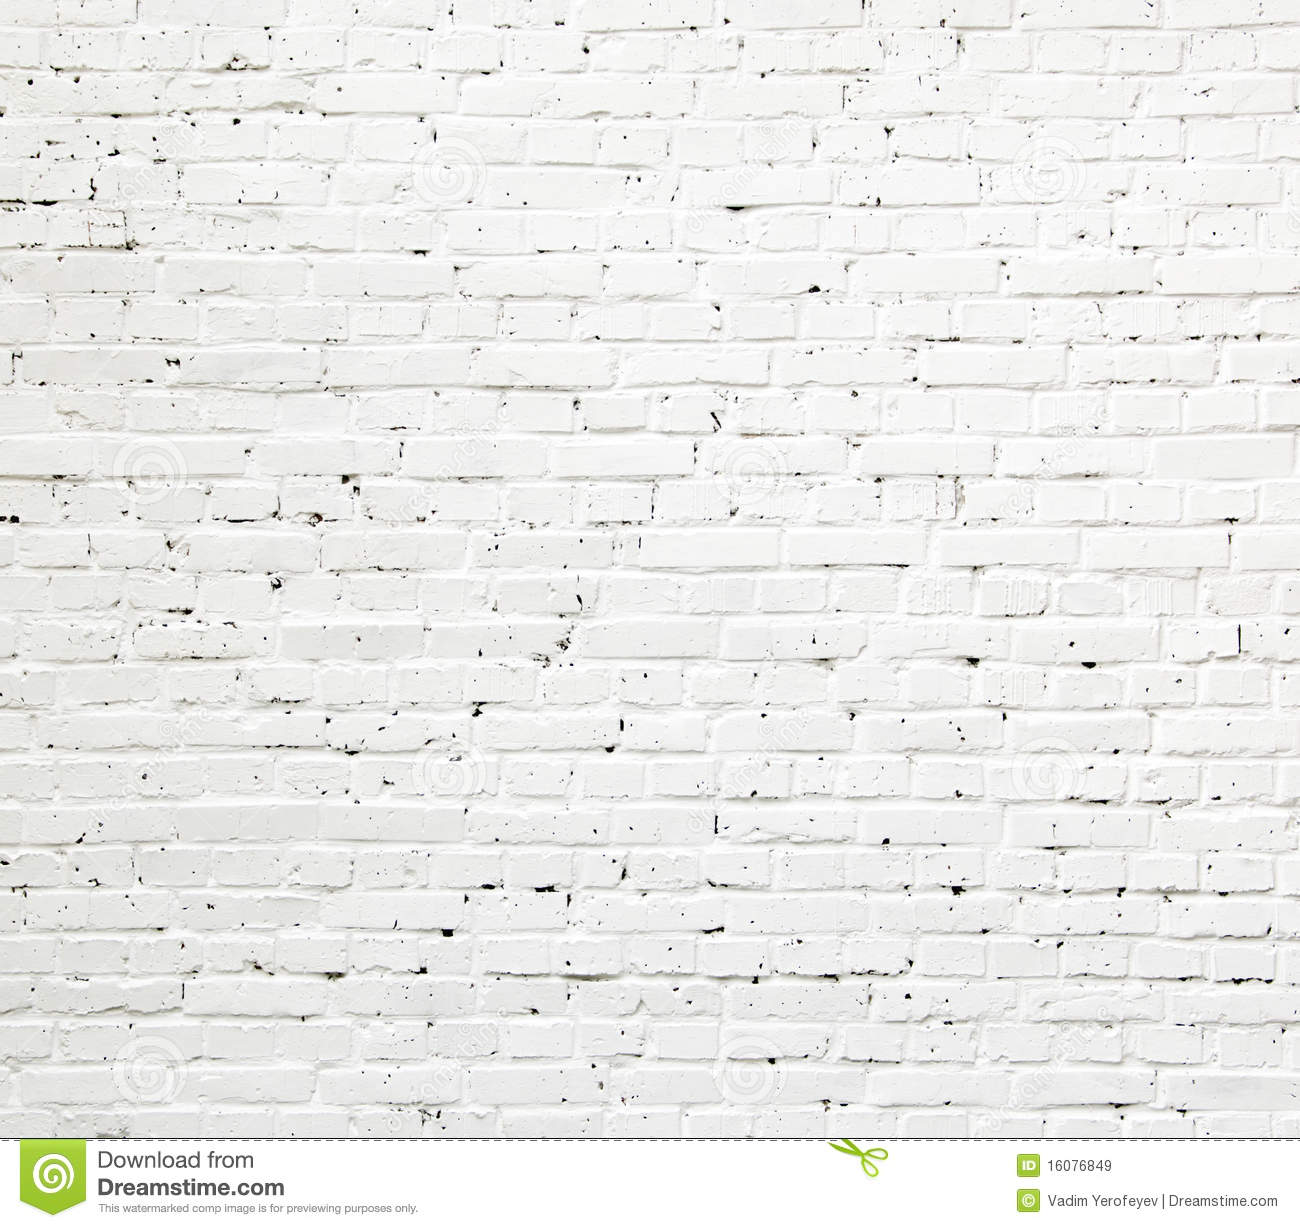 white brick wall texture royalty free stock images image 16076849. Black Bedroom Furniture Sets. Home Design Ideas